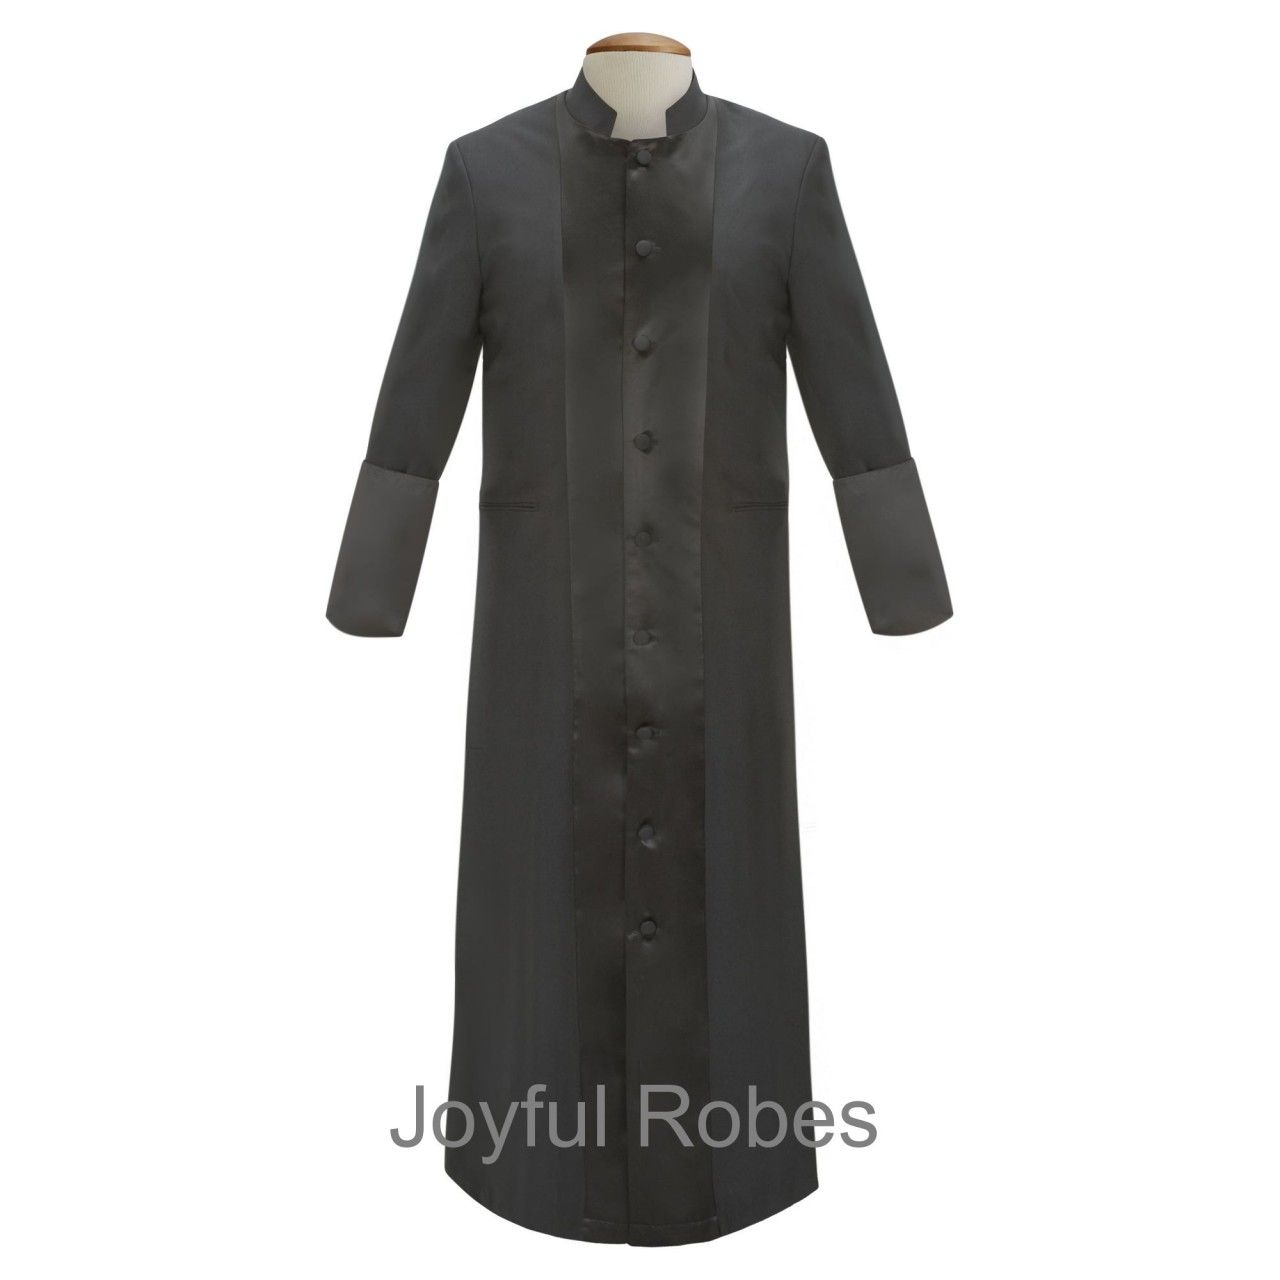 8133916f0c Men s Black Black Clergy Robe   Clergy Cassock - Clergy Attire ...